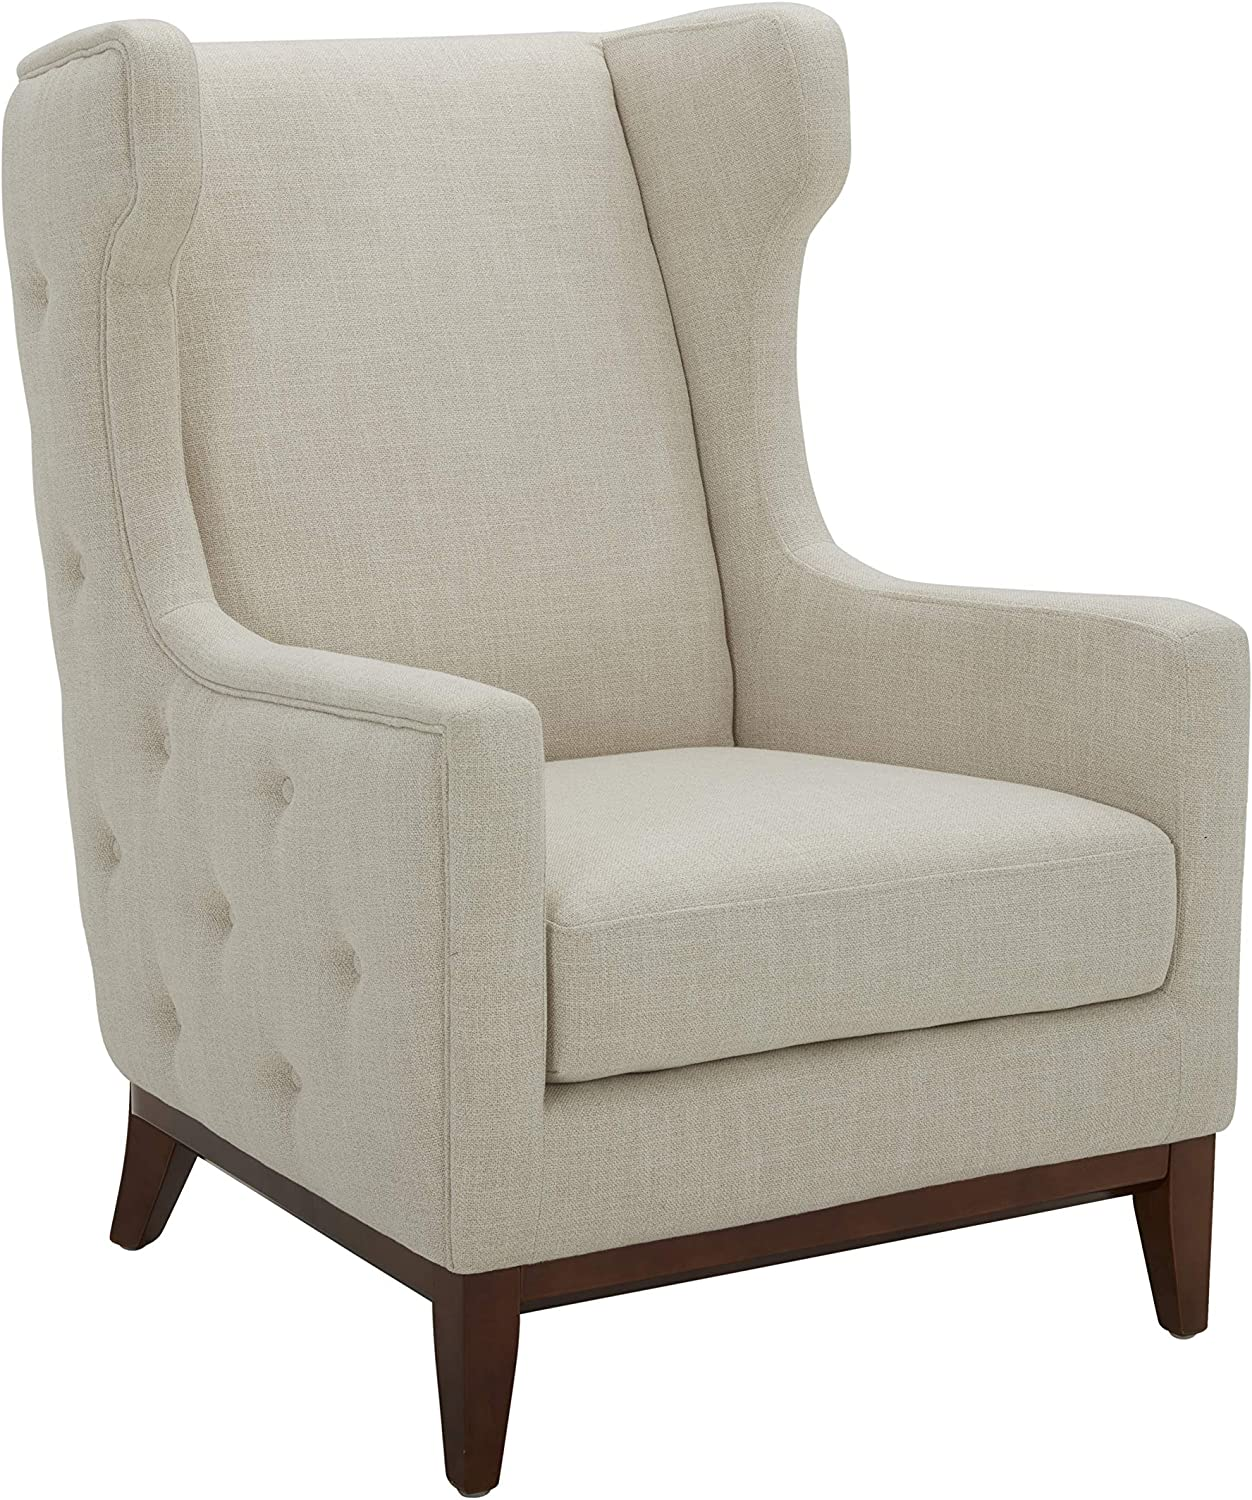 New Shipping Free Columbus Mall Amazon Brand – Stone Beam Upholstered W Rosewood Button-Tufted